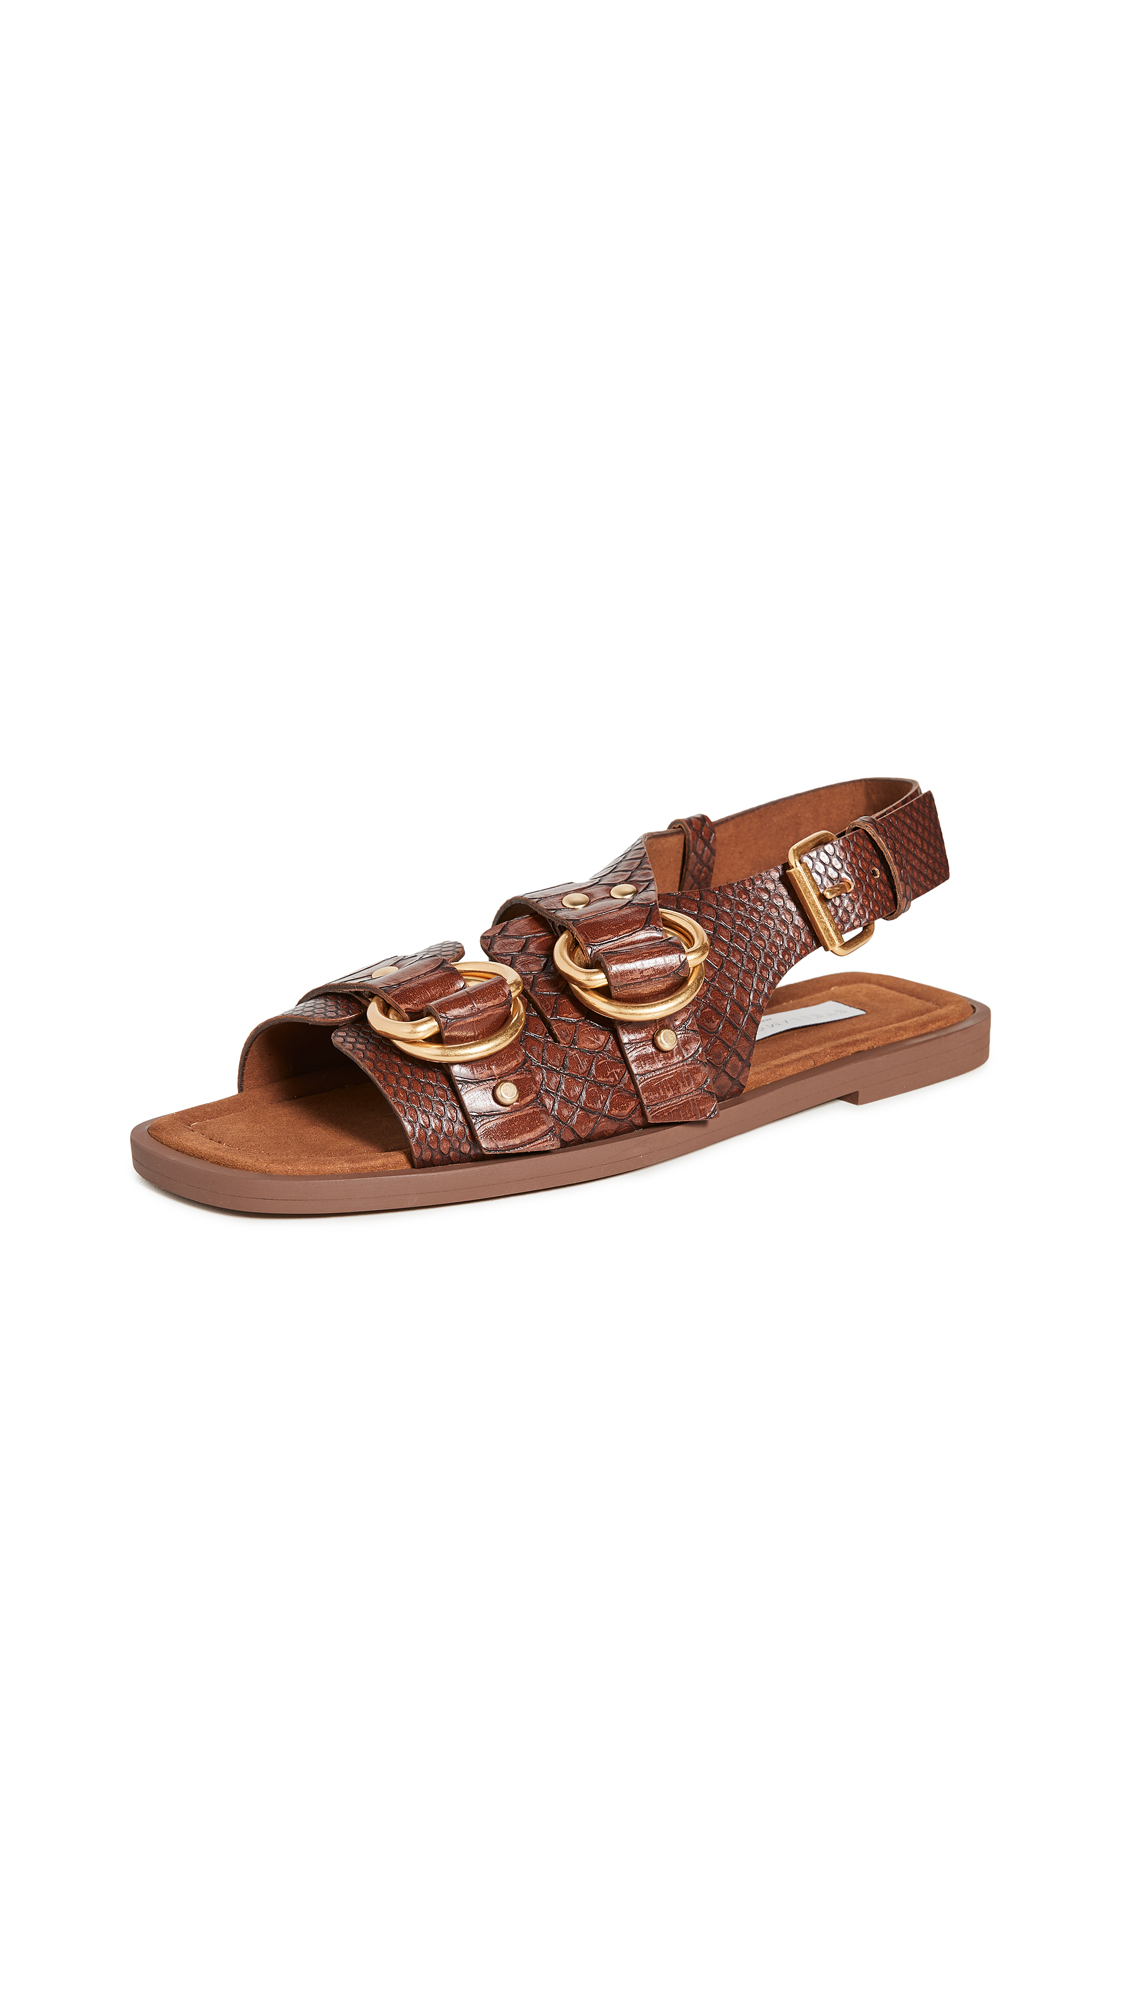 Buy Stella McCartney Flat Sandals online, shop Stella McCartney